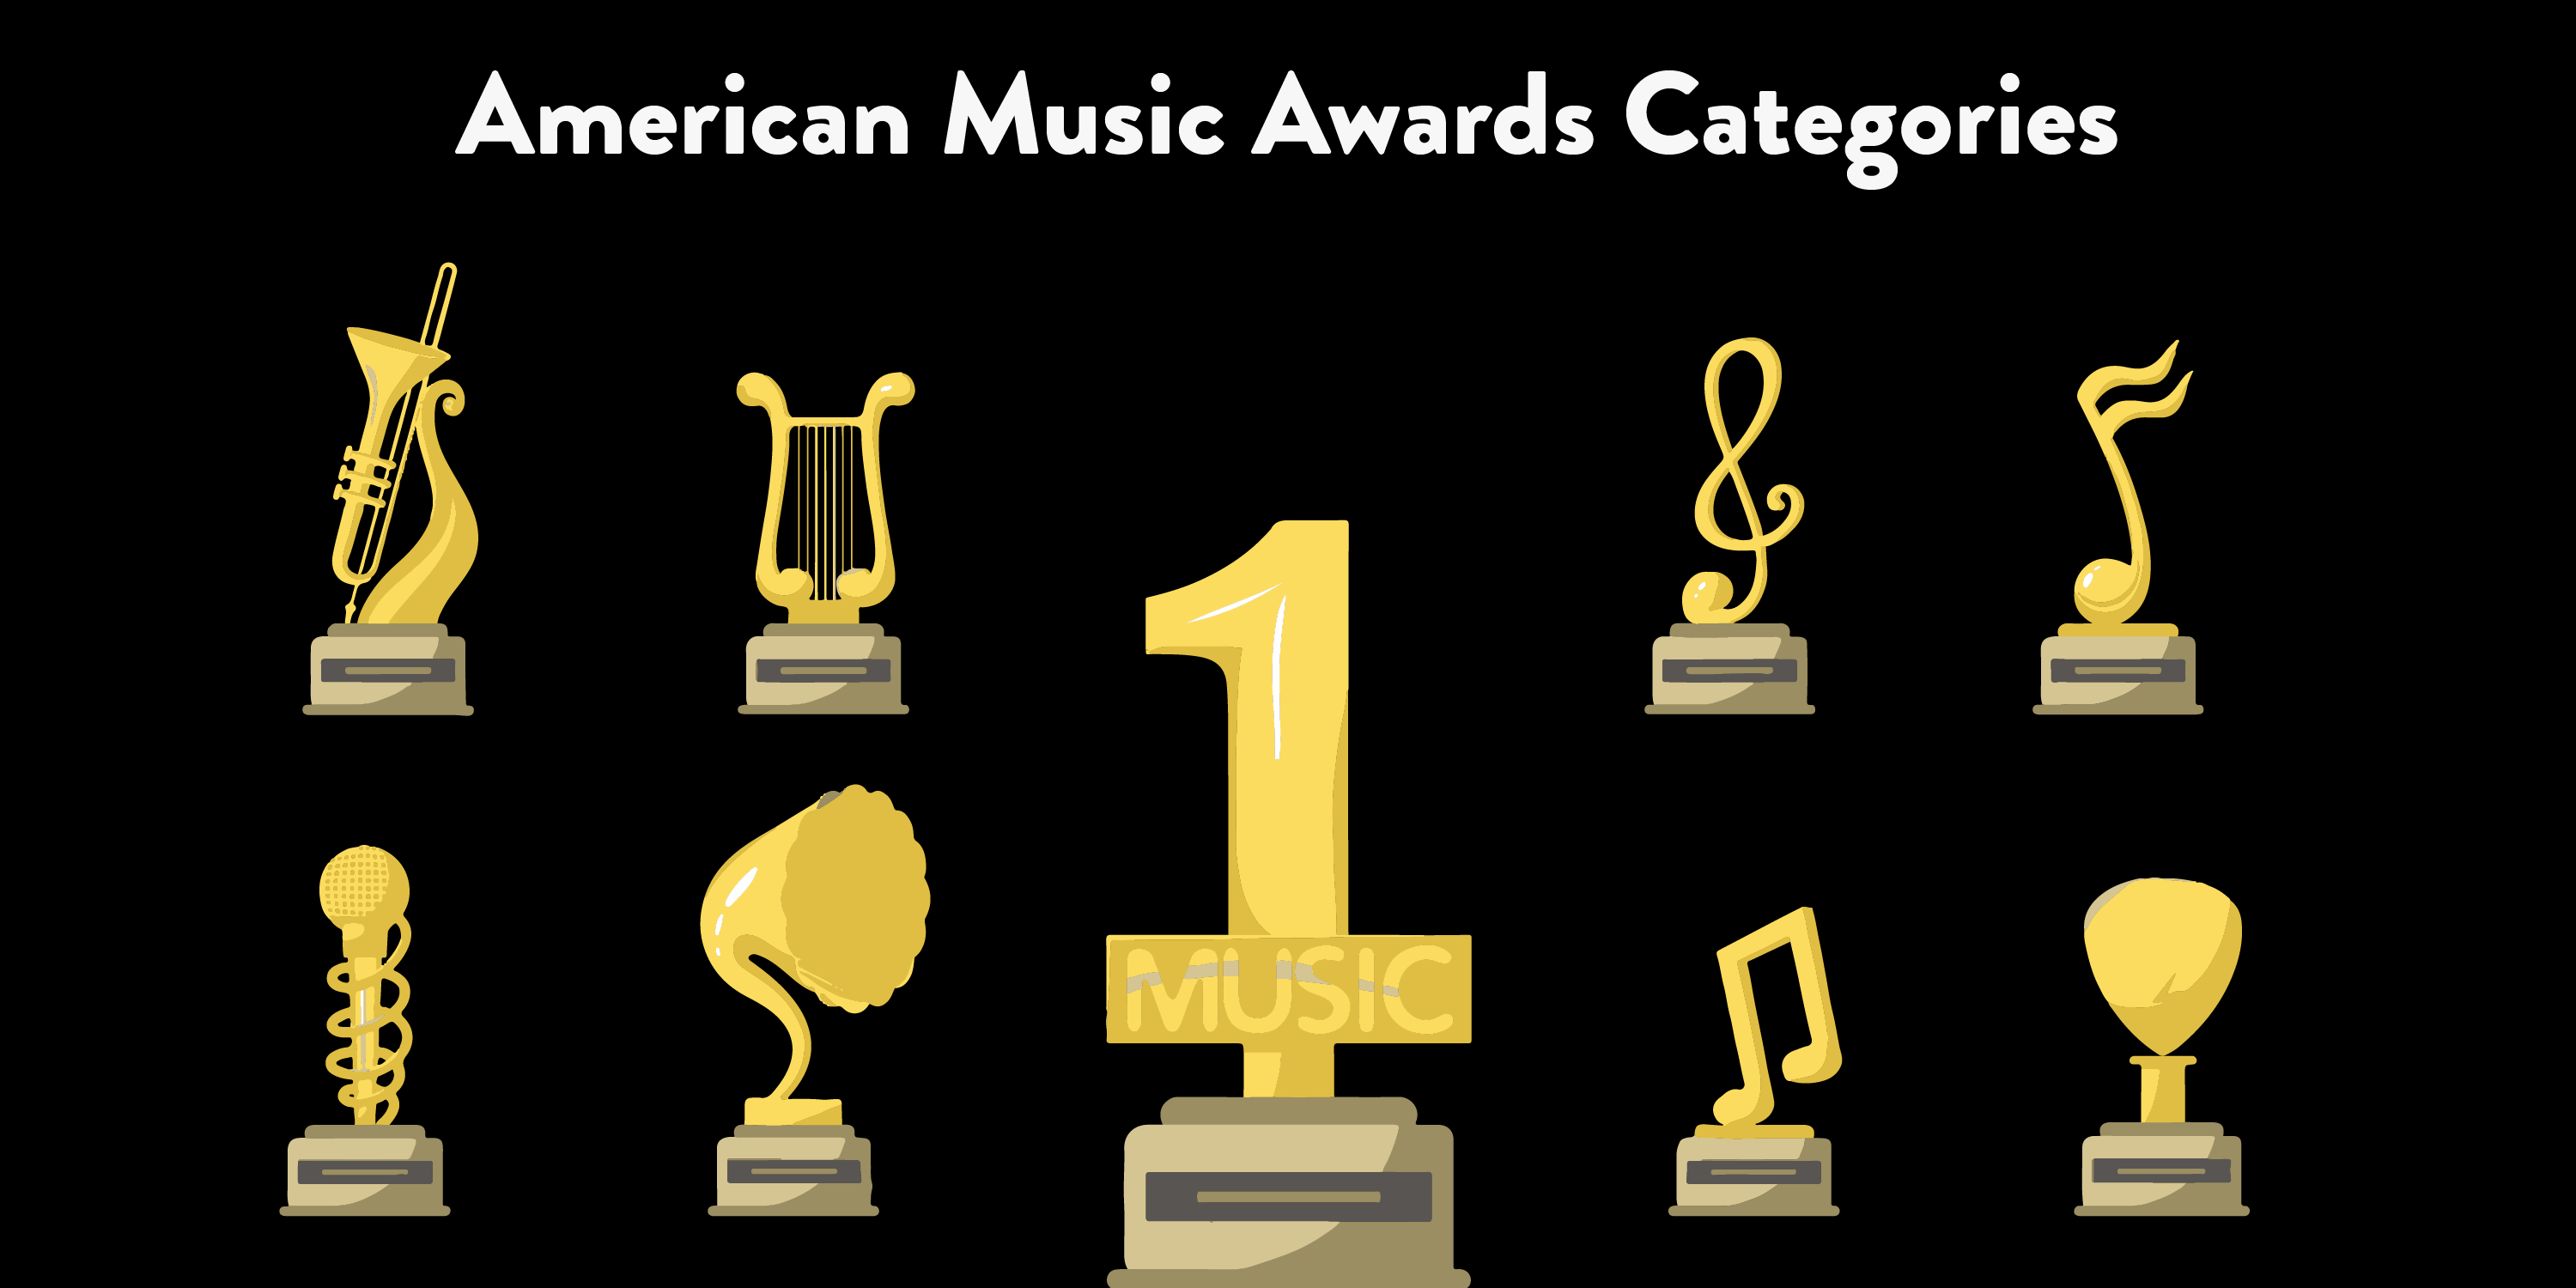 American Music Awards Categories